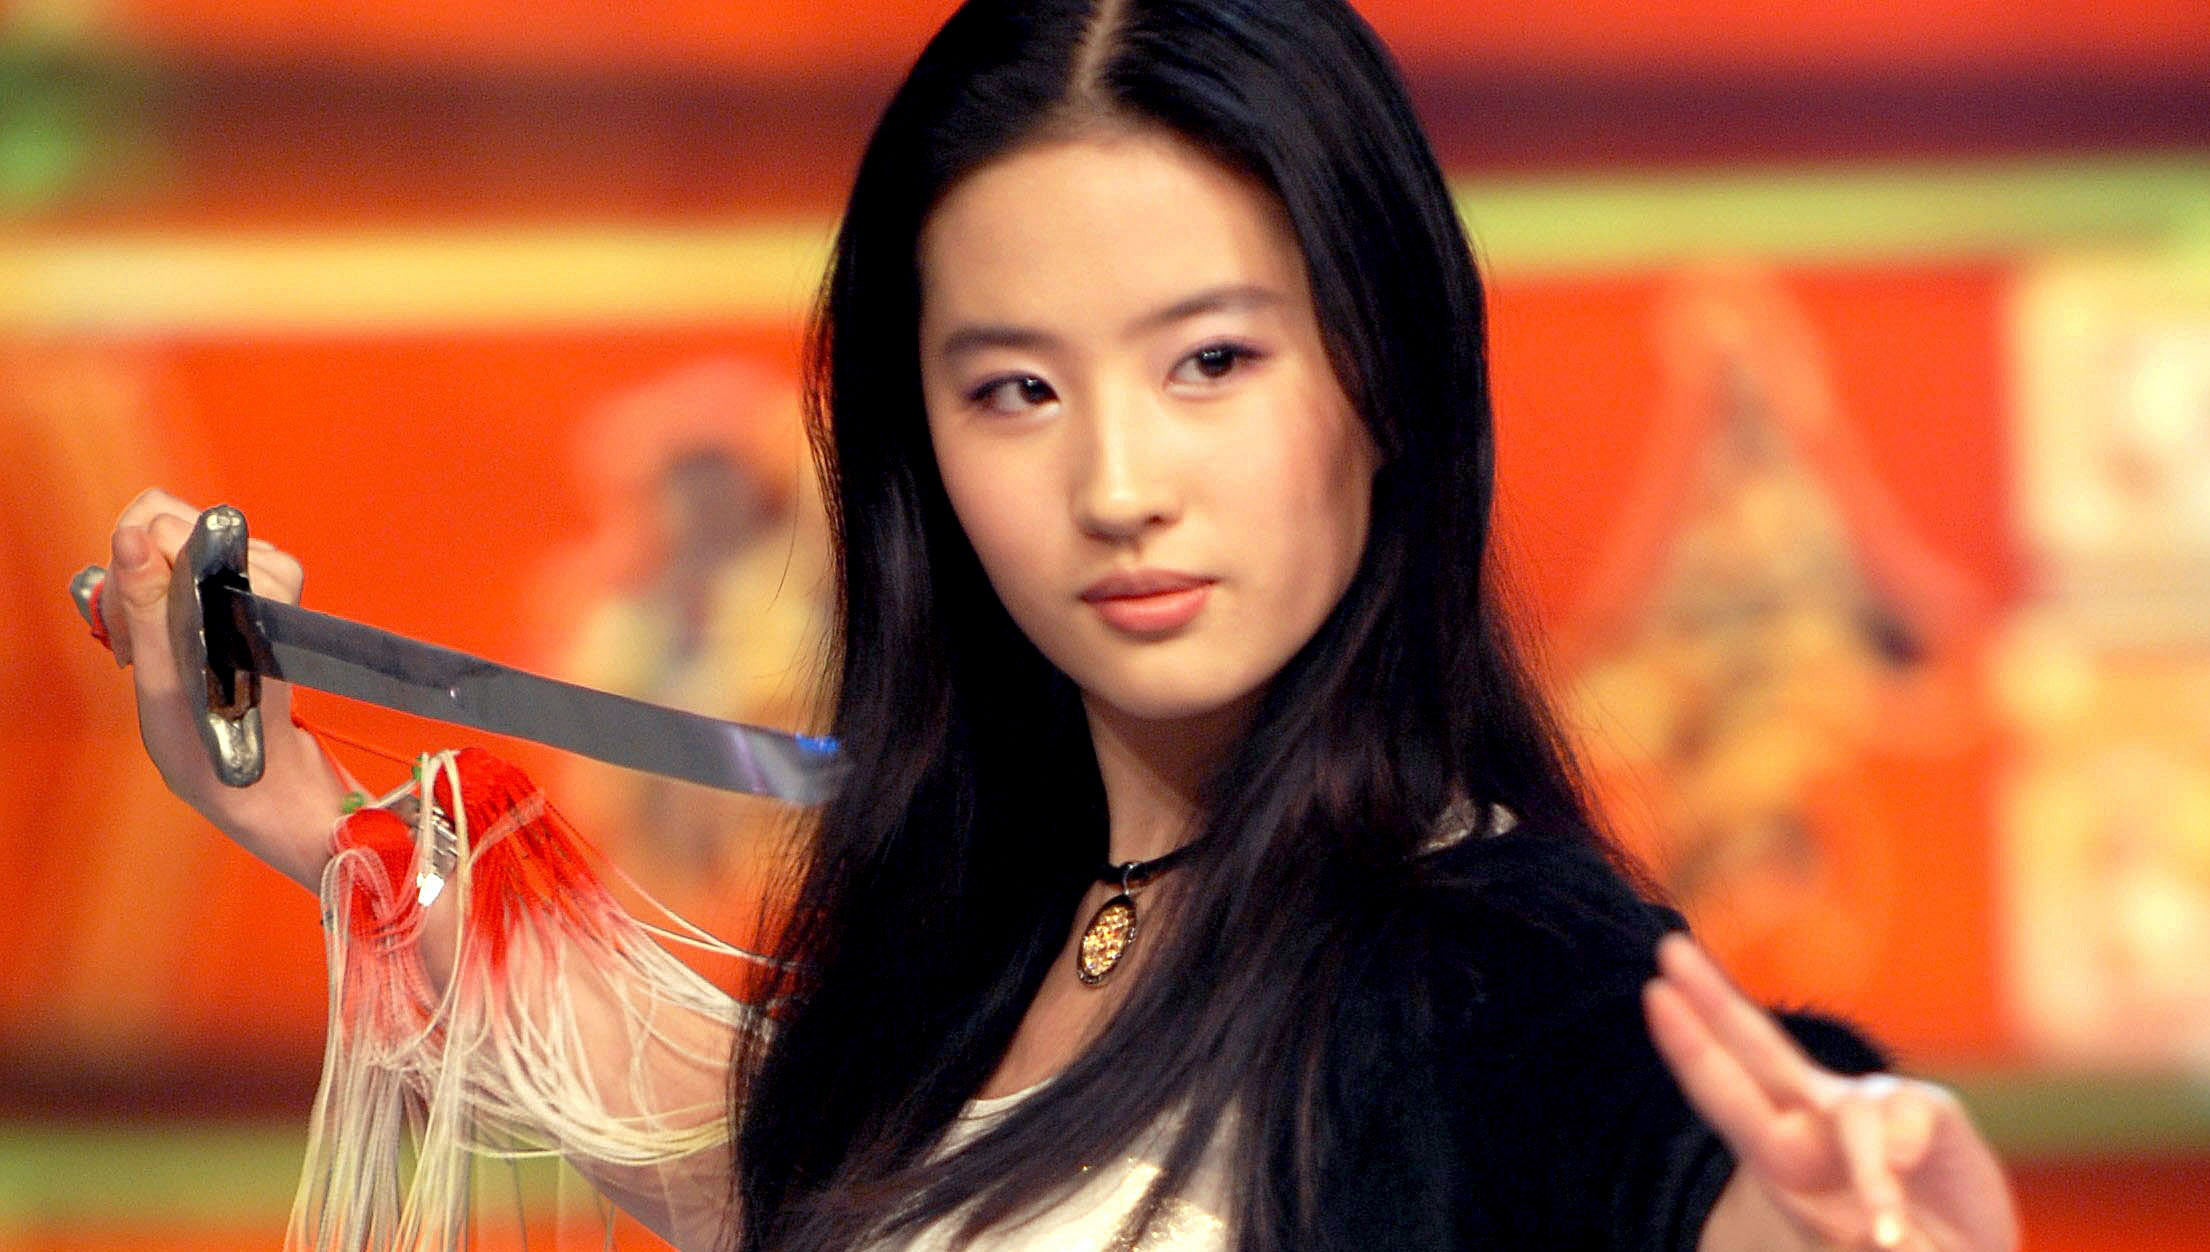 Liu Yifei Latest News, Photos, and Videos